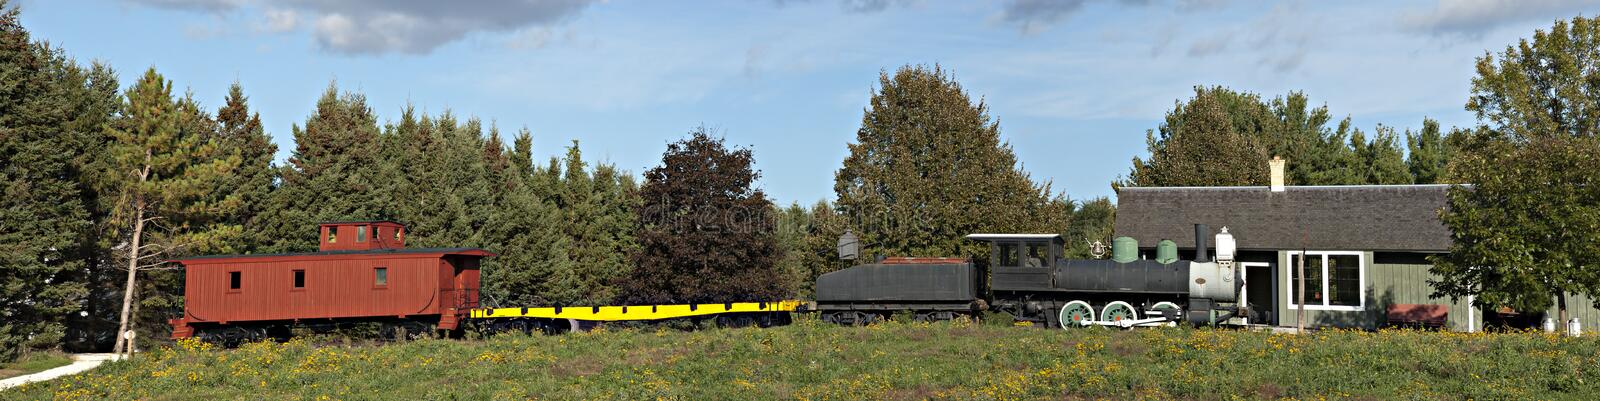 Download Old Time Steam Locomotive Railroad Train Panorama Stock Photo - Image: 16242716